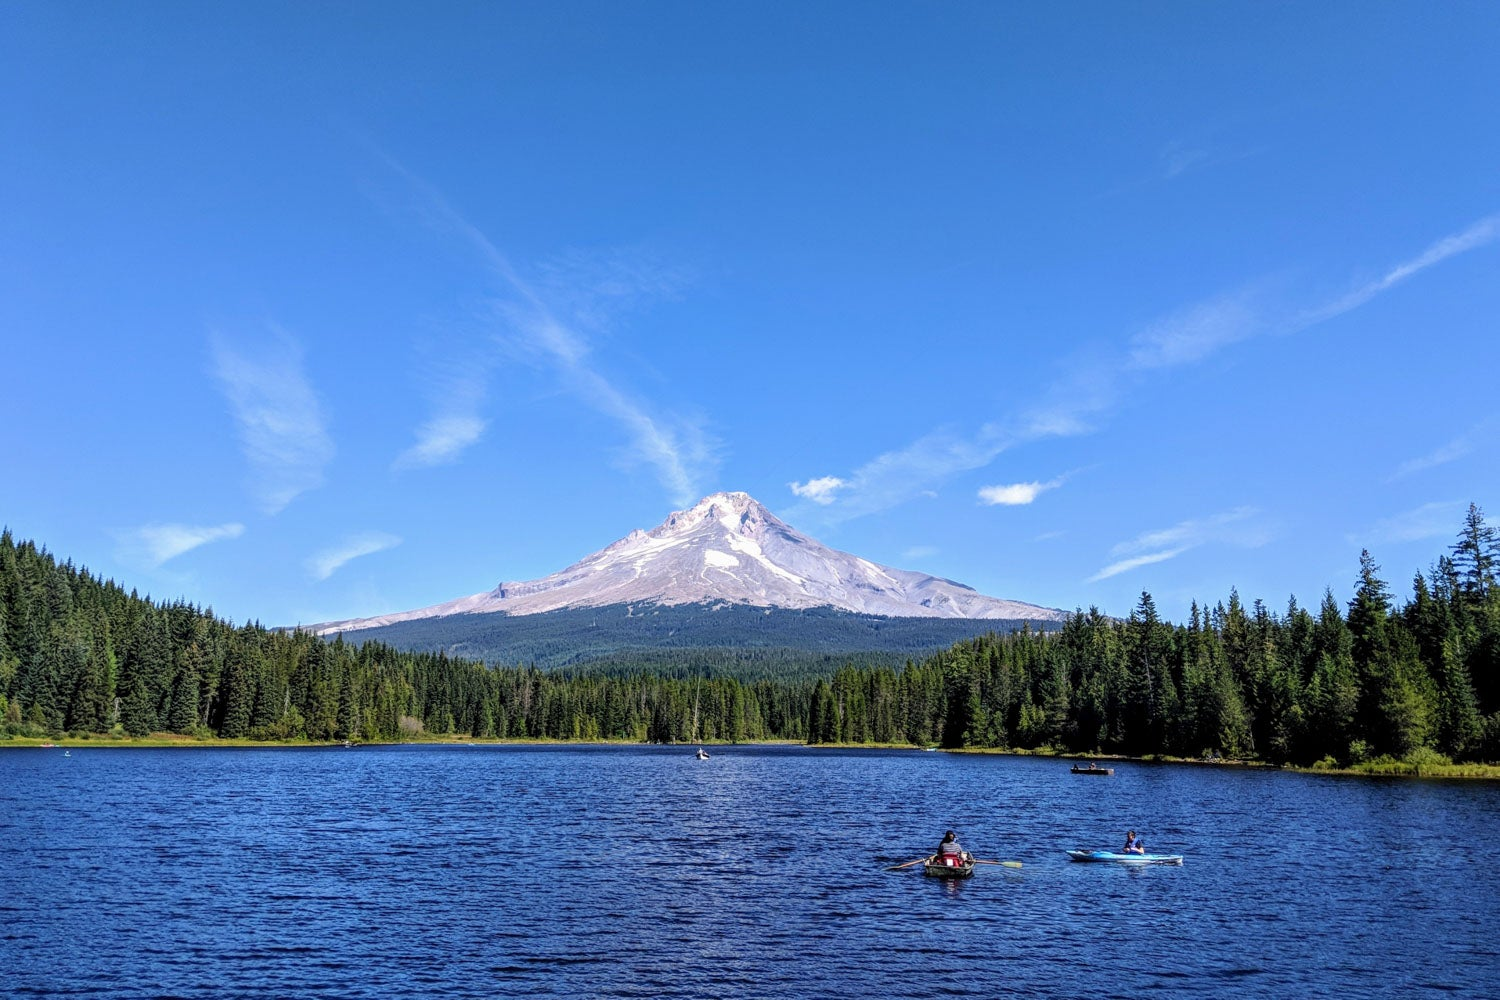 mount hood on a sunny day in oregon with trillium lake below and people kayaking along it